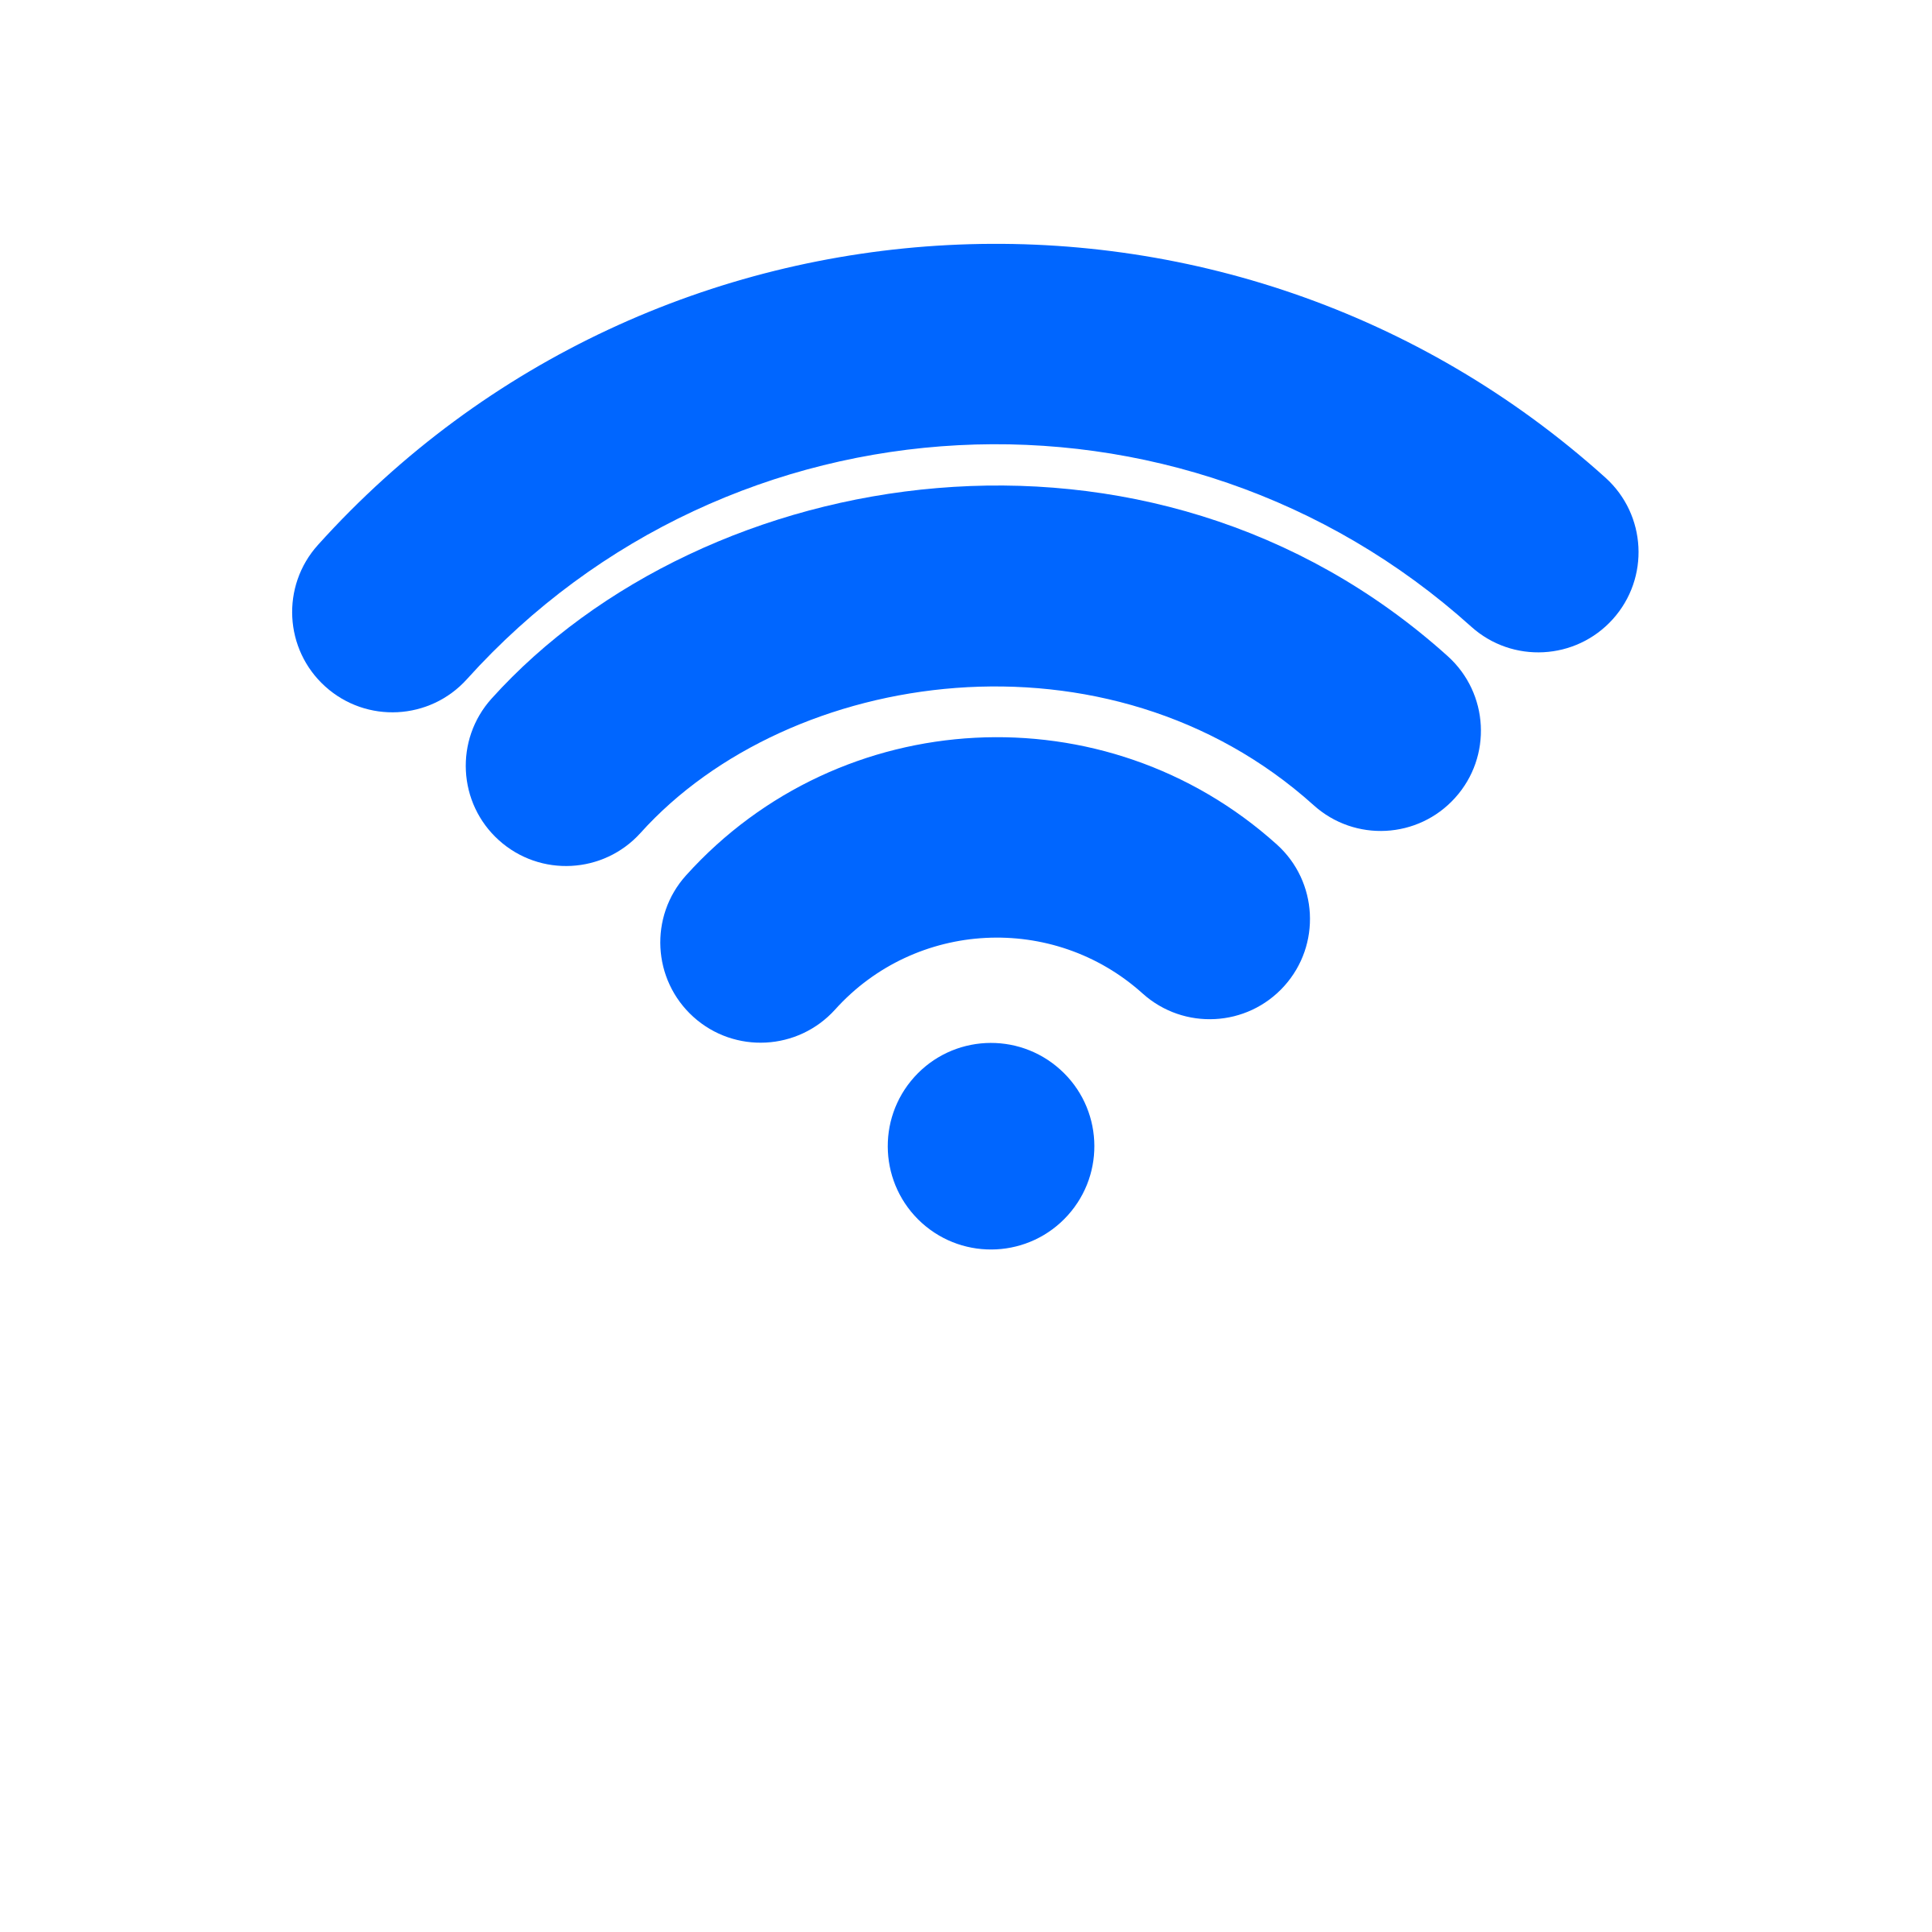 wifi symbol by kalapahejo